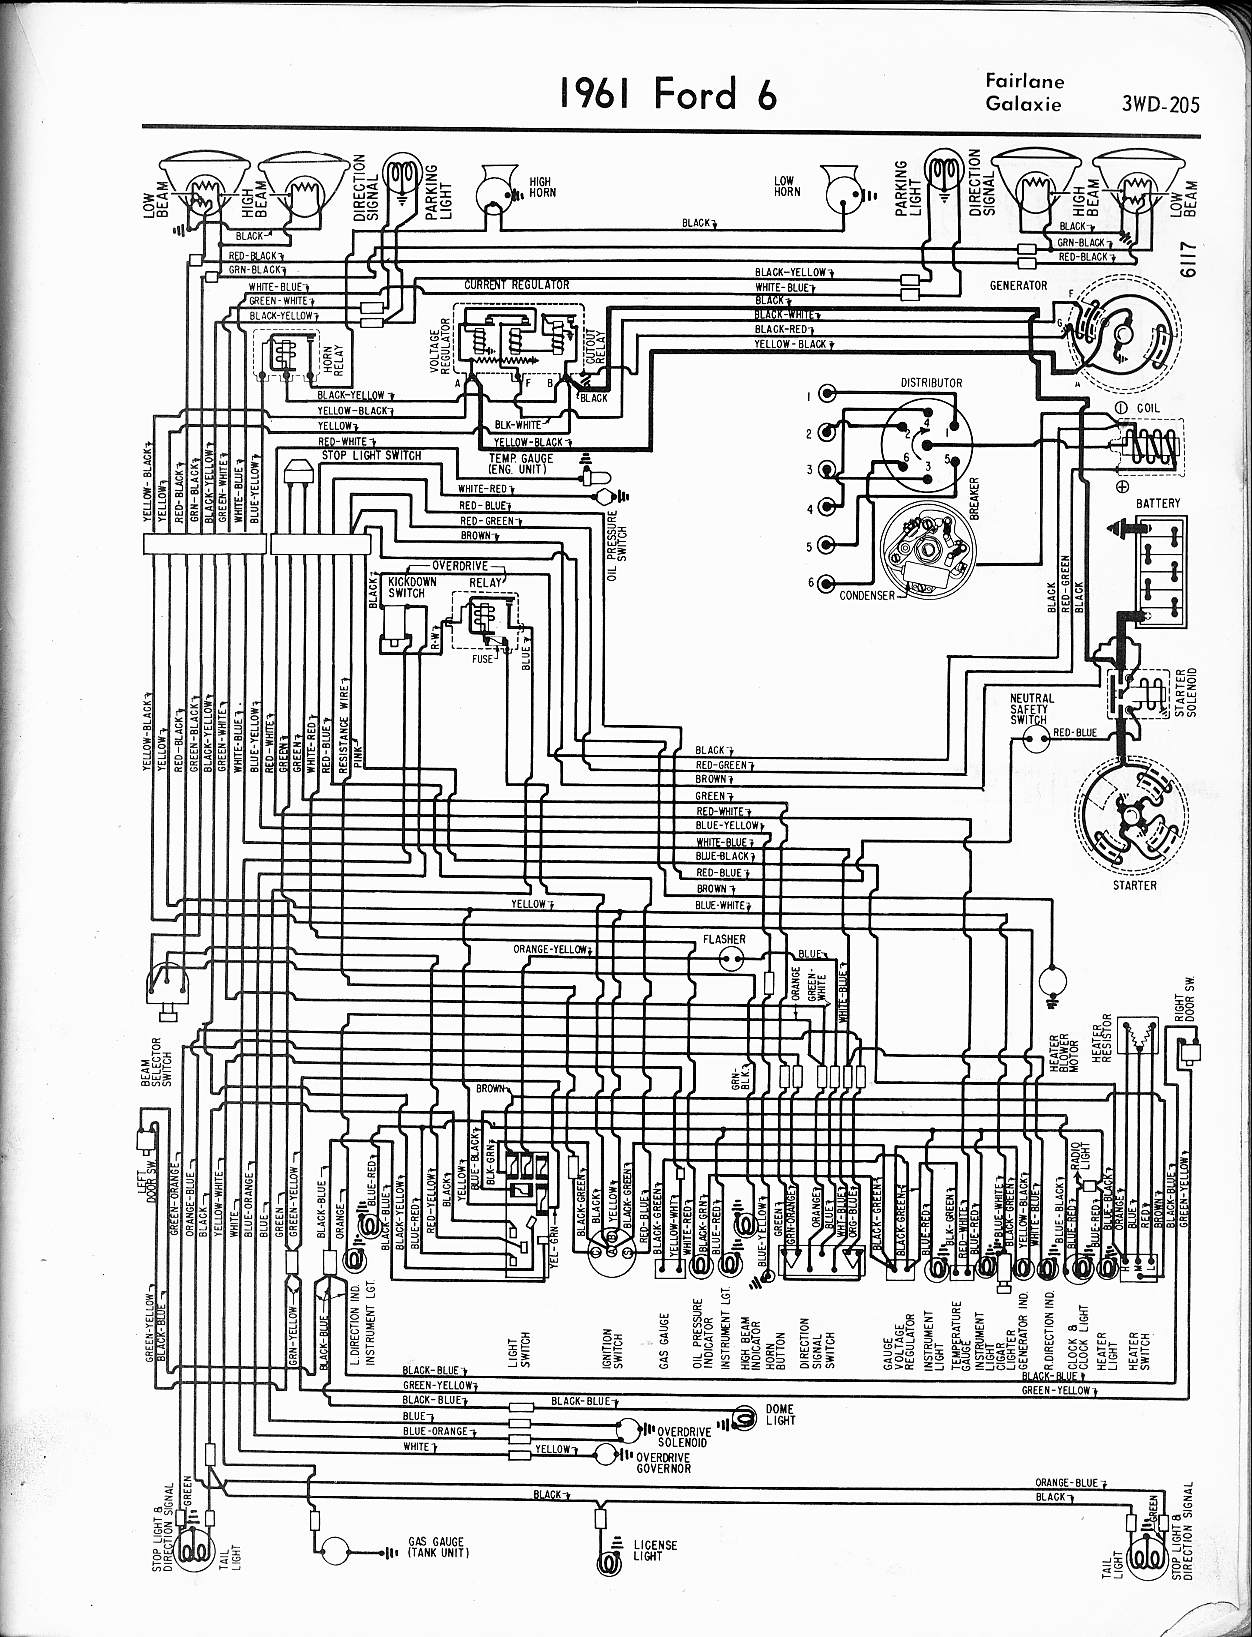 1956 ford wiring diagram simple wiring diagram rh david huggett co uk